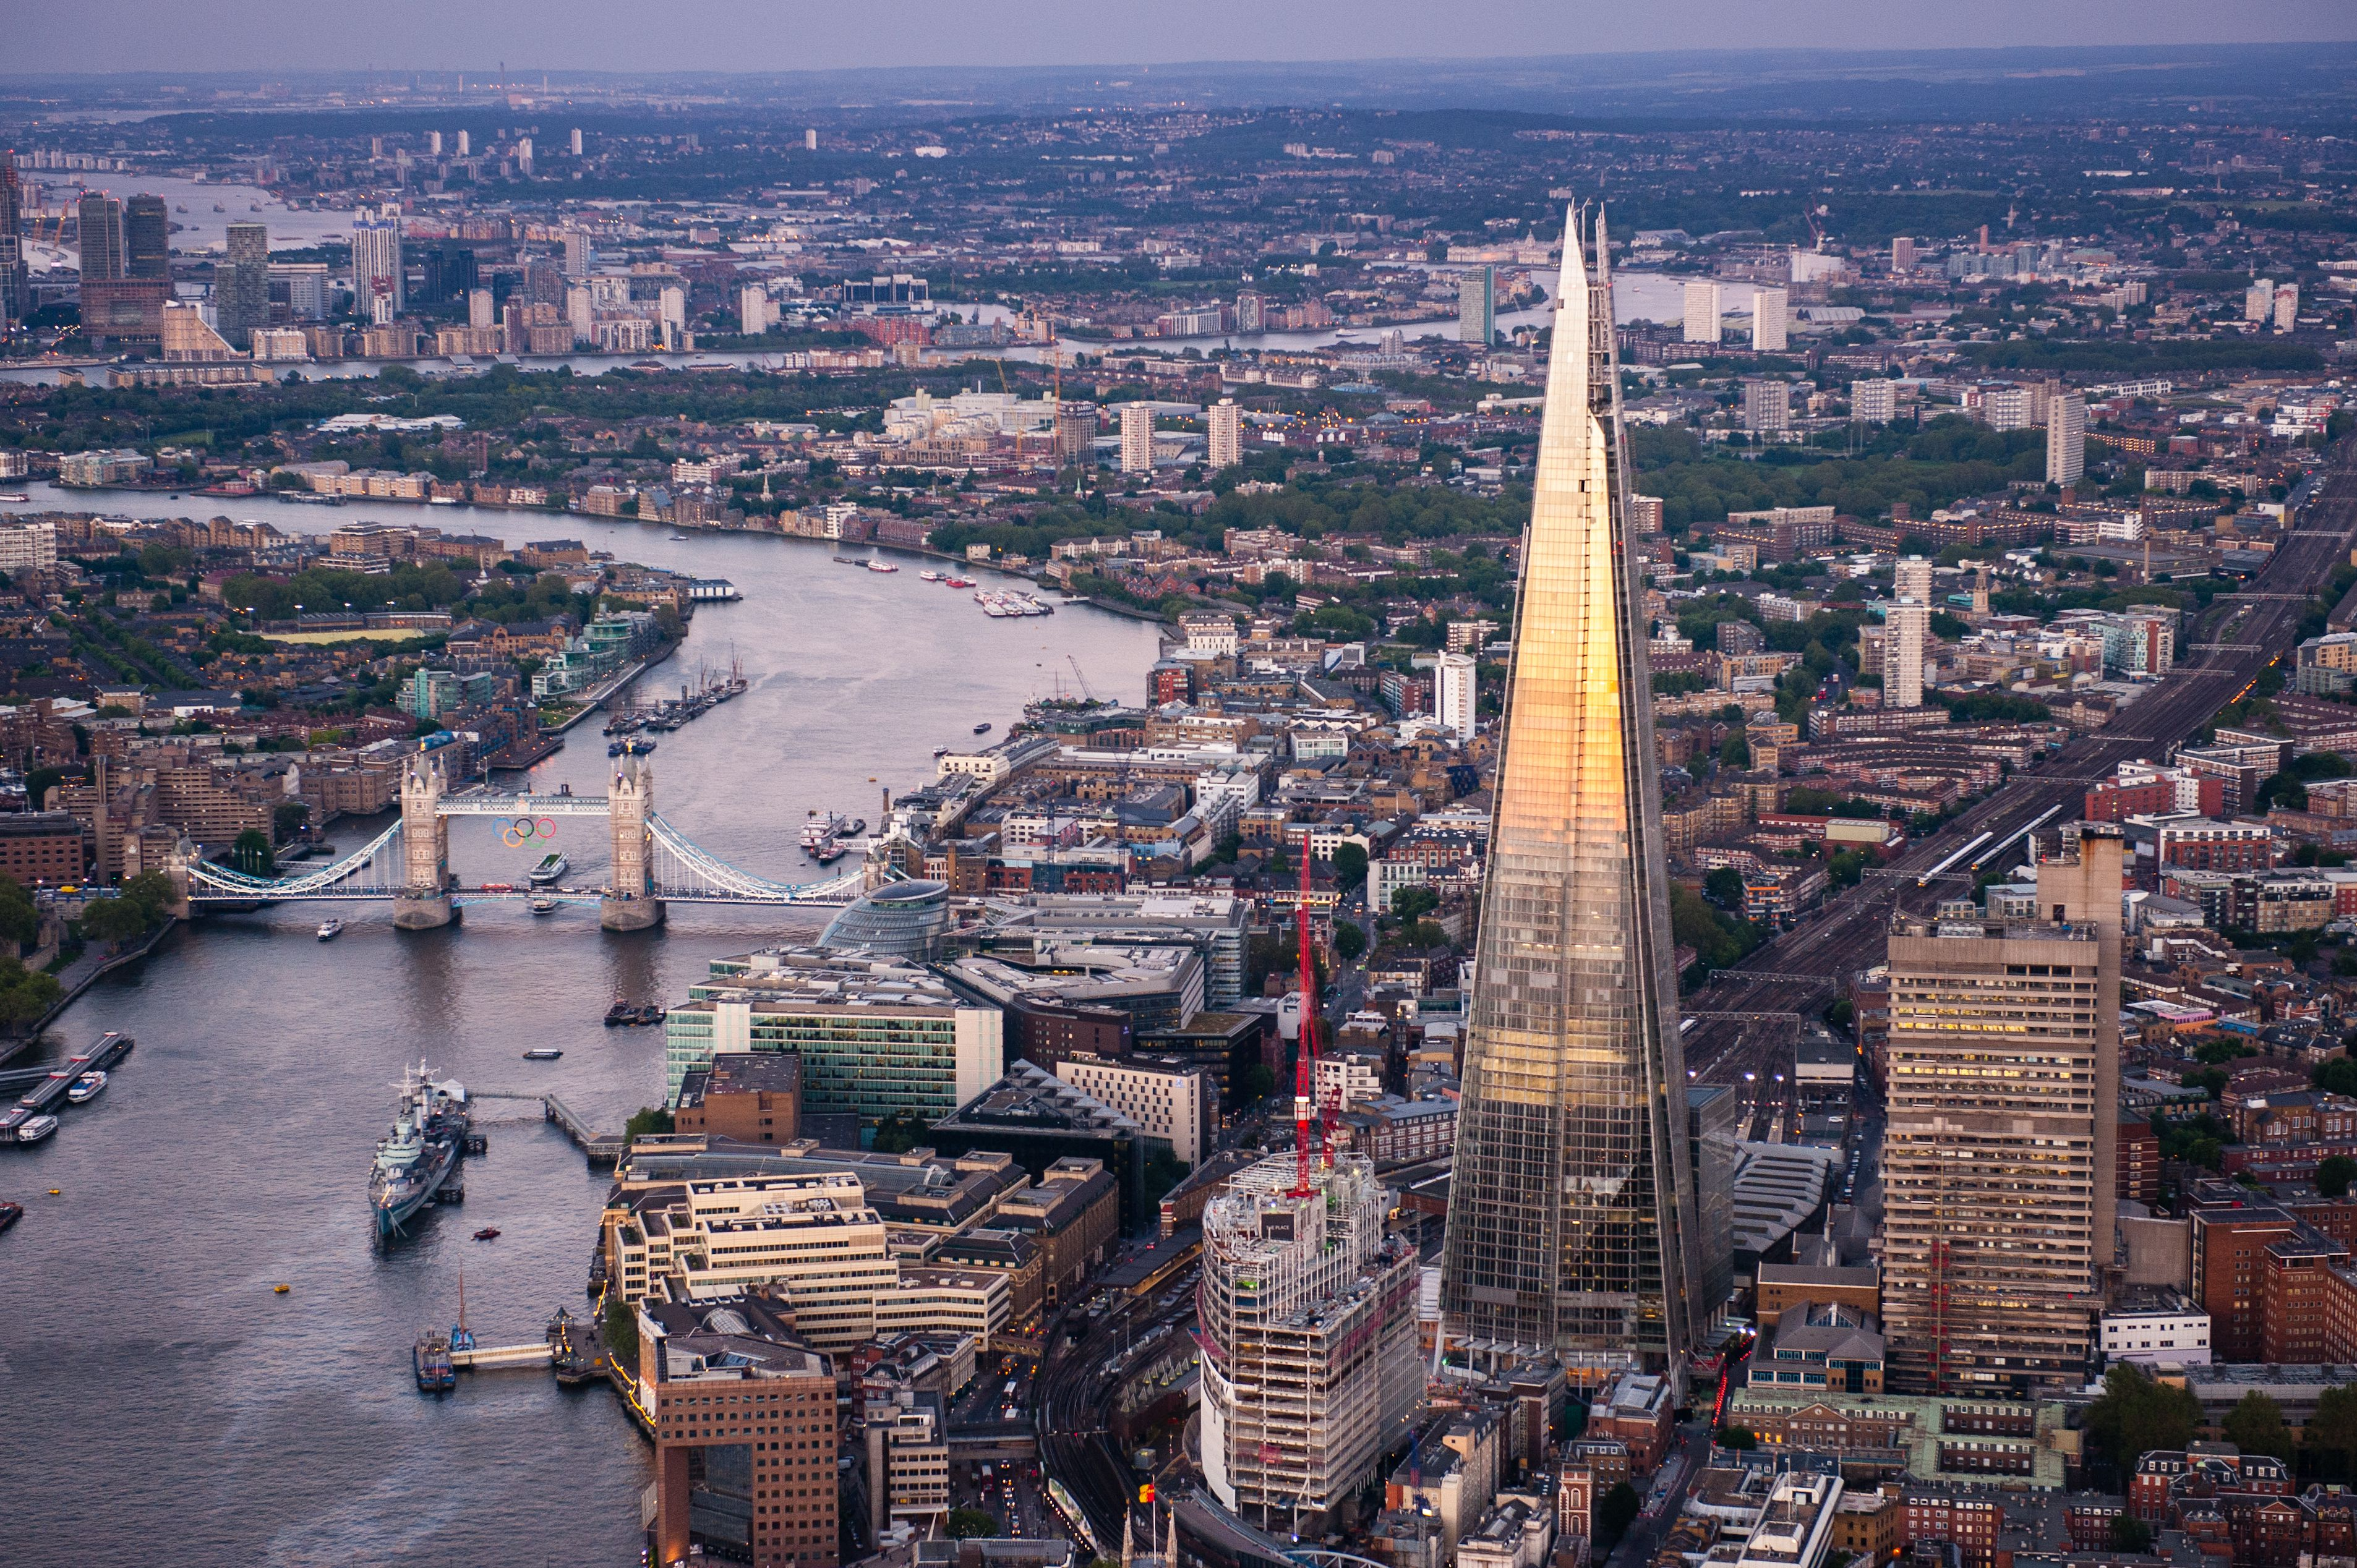 An aerial view of the Shard on June 28, 2012 in London, England. Standing at 309.6 metres high the Shard is the tallest buliding in Europe and was designed by architect Renzo Piano.